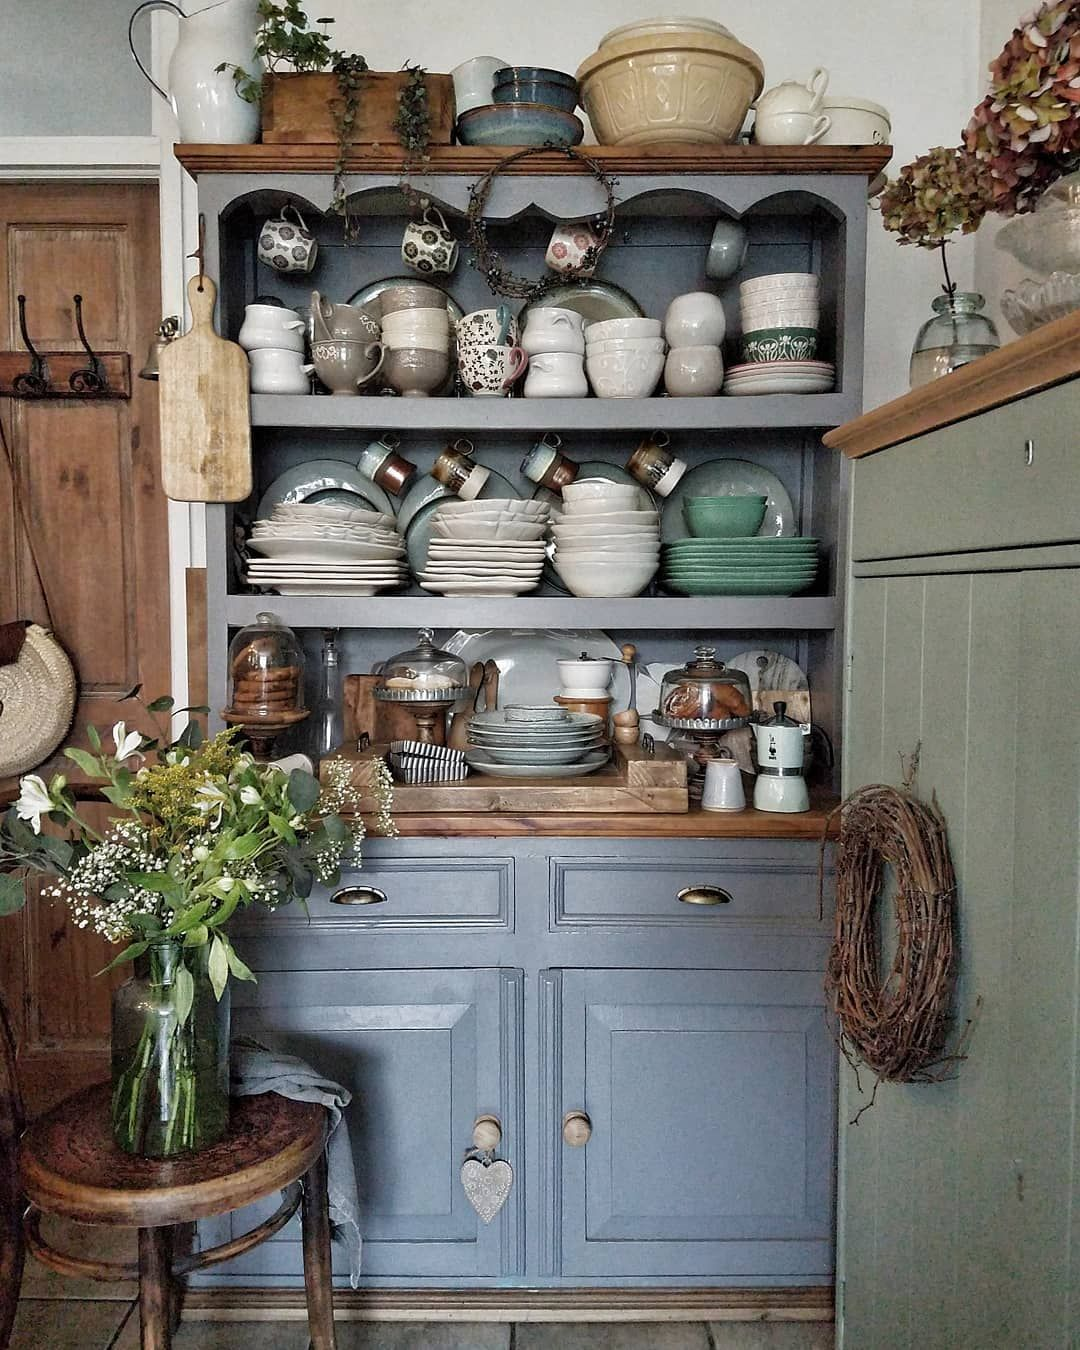 Upcycling Tips To Follow From A Salvage Yard Pro Shabby Chic